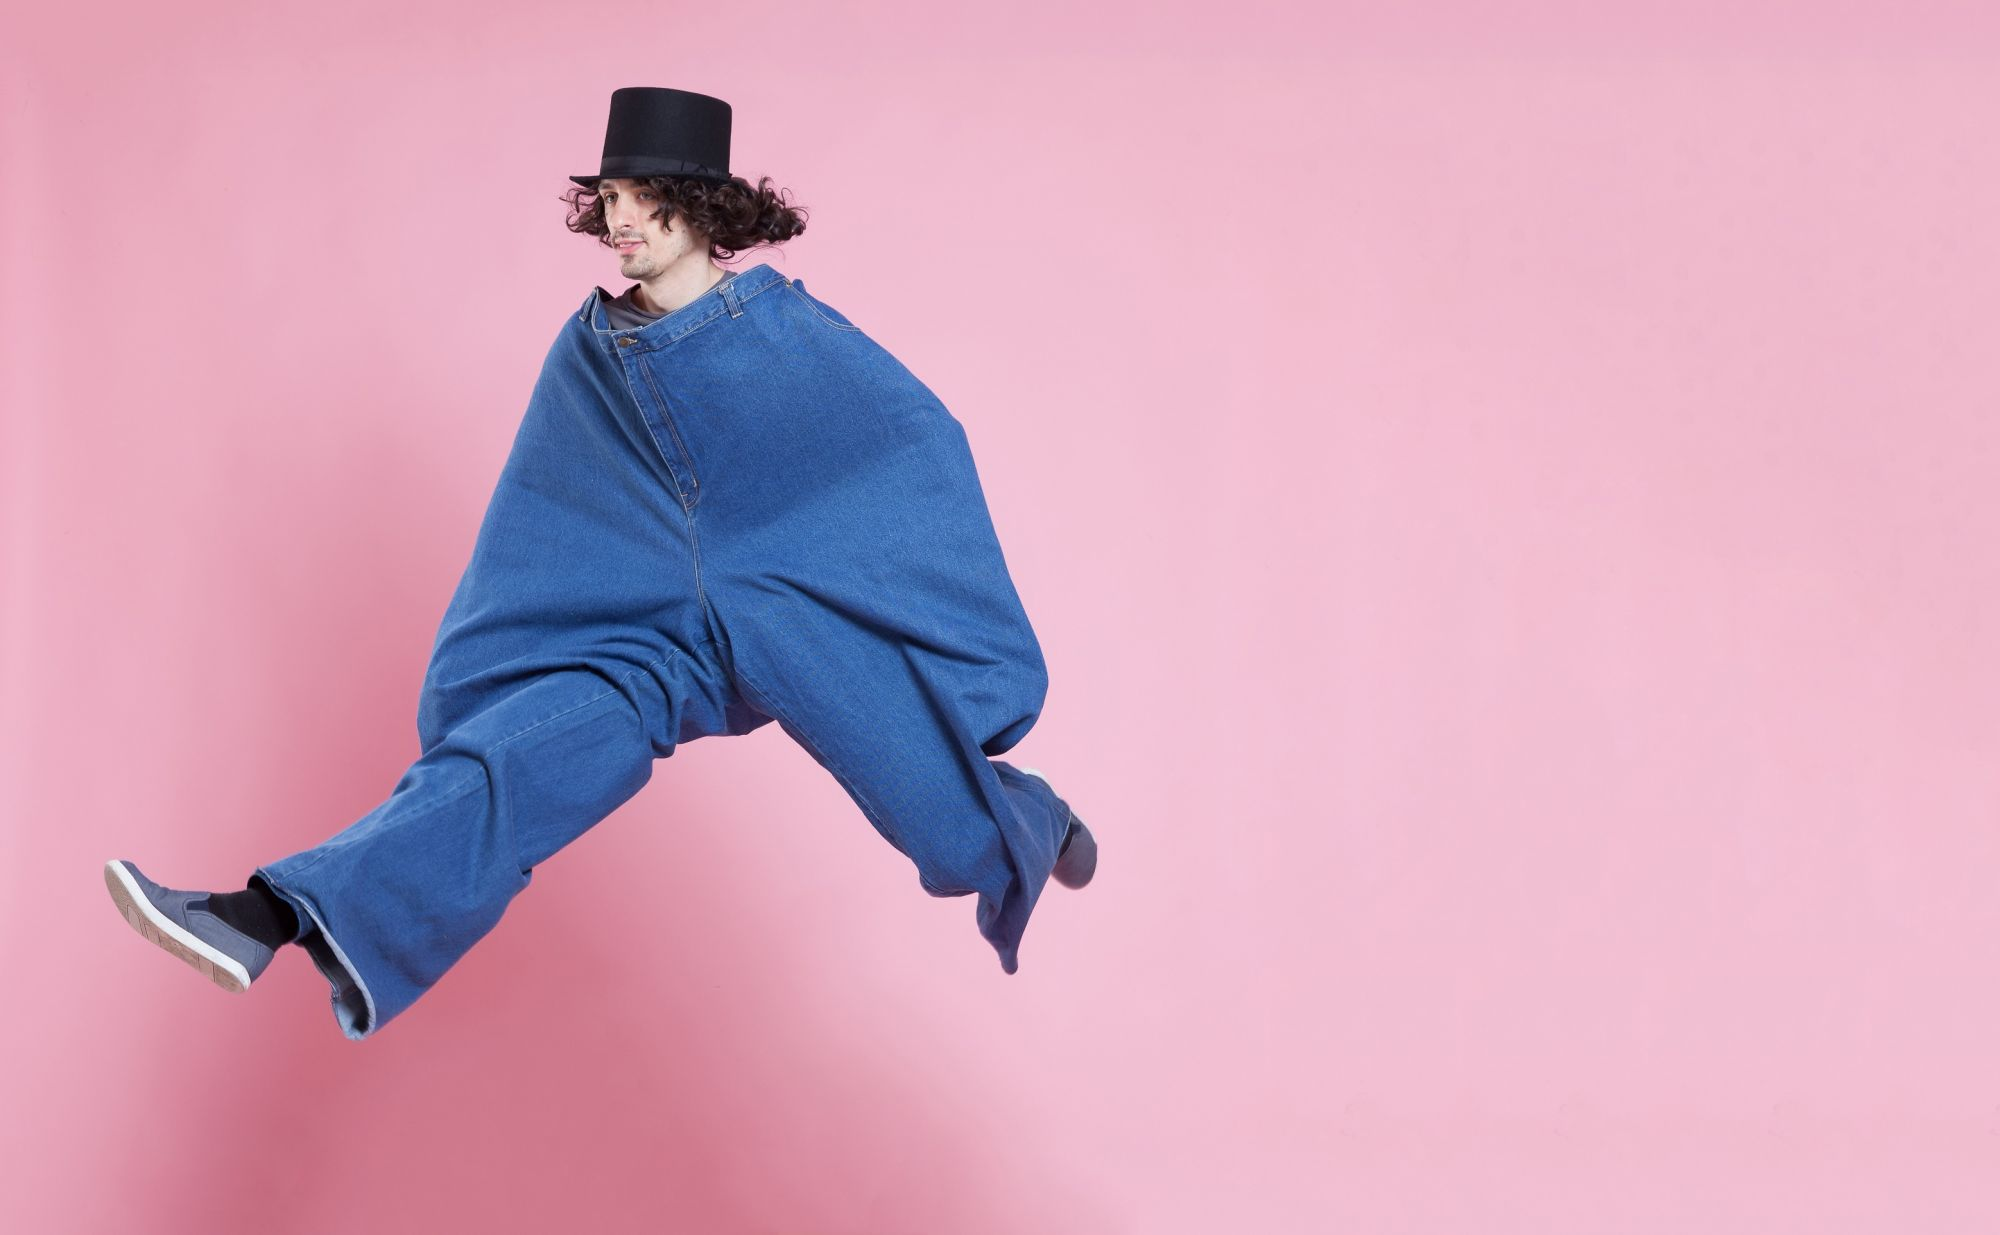 Young man wearing extra large pants and a top hat, jumping high.